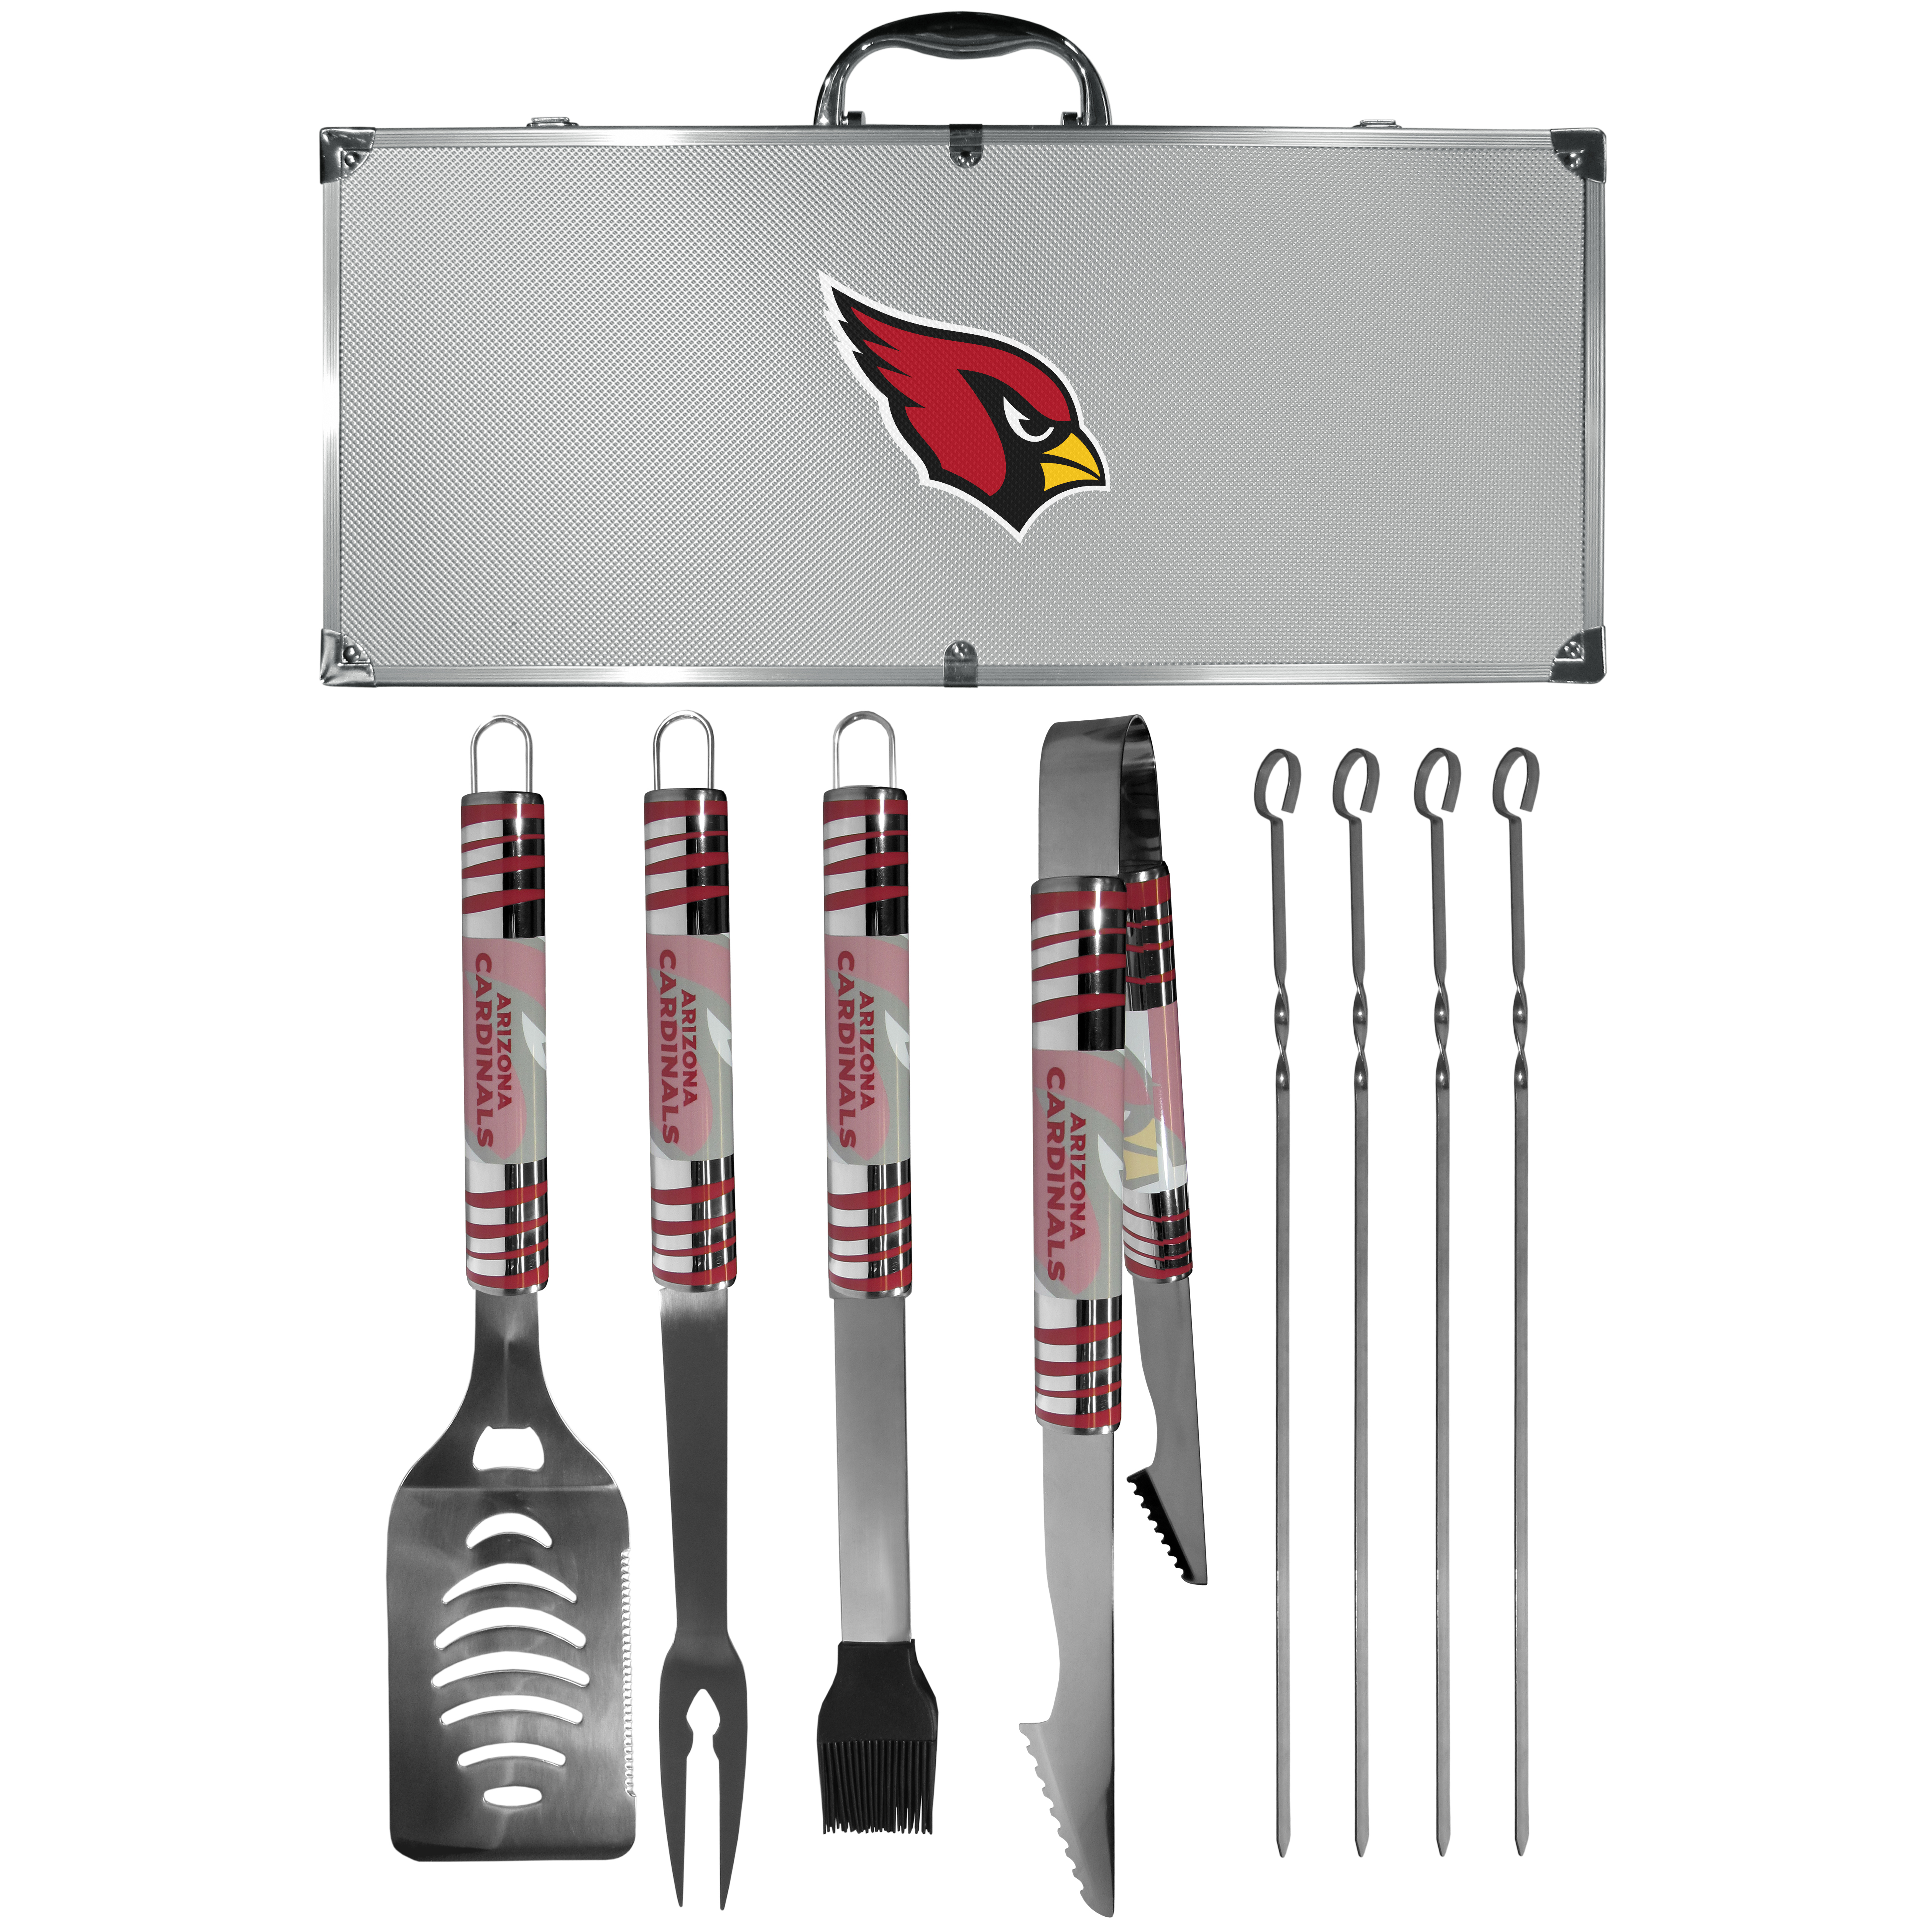 Arizona Cardinals 8 pc Tailgater BBQ Set - This is the ultimate Arizona Cardinals tailgate accessory! The high quality, 420 grade stainless steel tools are durable and well-made enough to make even the pickiest grill master smile. This complete grill accessory kit includes; 4 skewers, spatula with bottle opener and serrated knife edge, basting brush, tongs and a fork. The 18 inch metal carrying case is perfect for great outdoor use making grilling an ease while camping, tailgating or while having a game day party on your patio. The tools are 17 inches long and feature vivid team graphics. The metal case features a large team emblem with exceptional detail. This high-end men's gift is sure to be a hit as a present on Father's Day or Christmas.